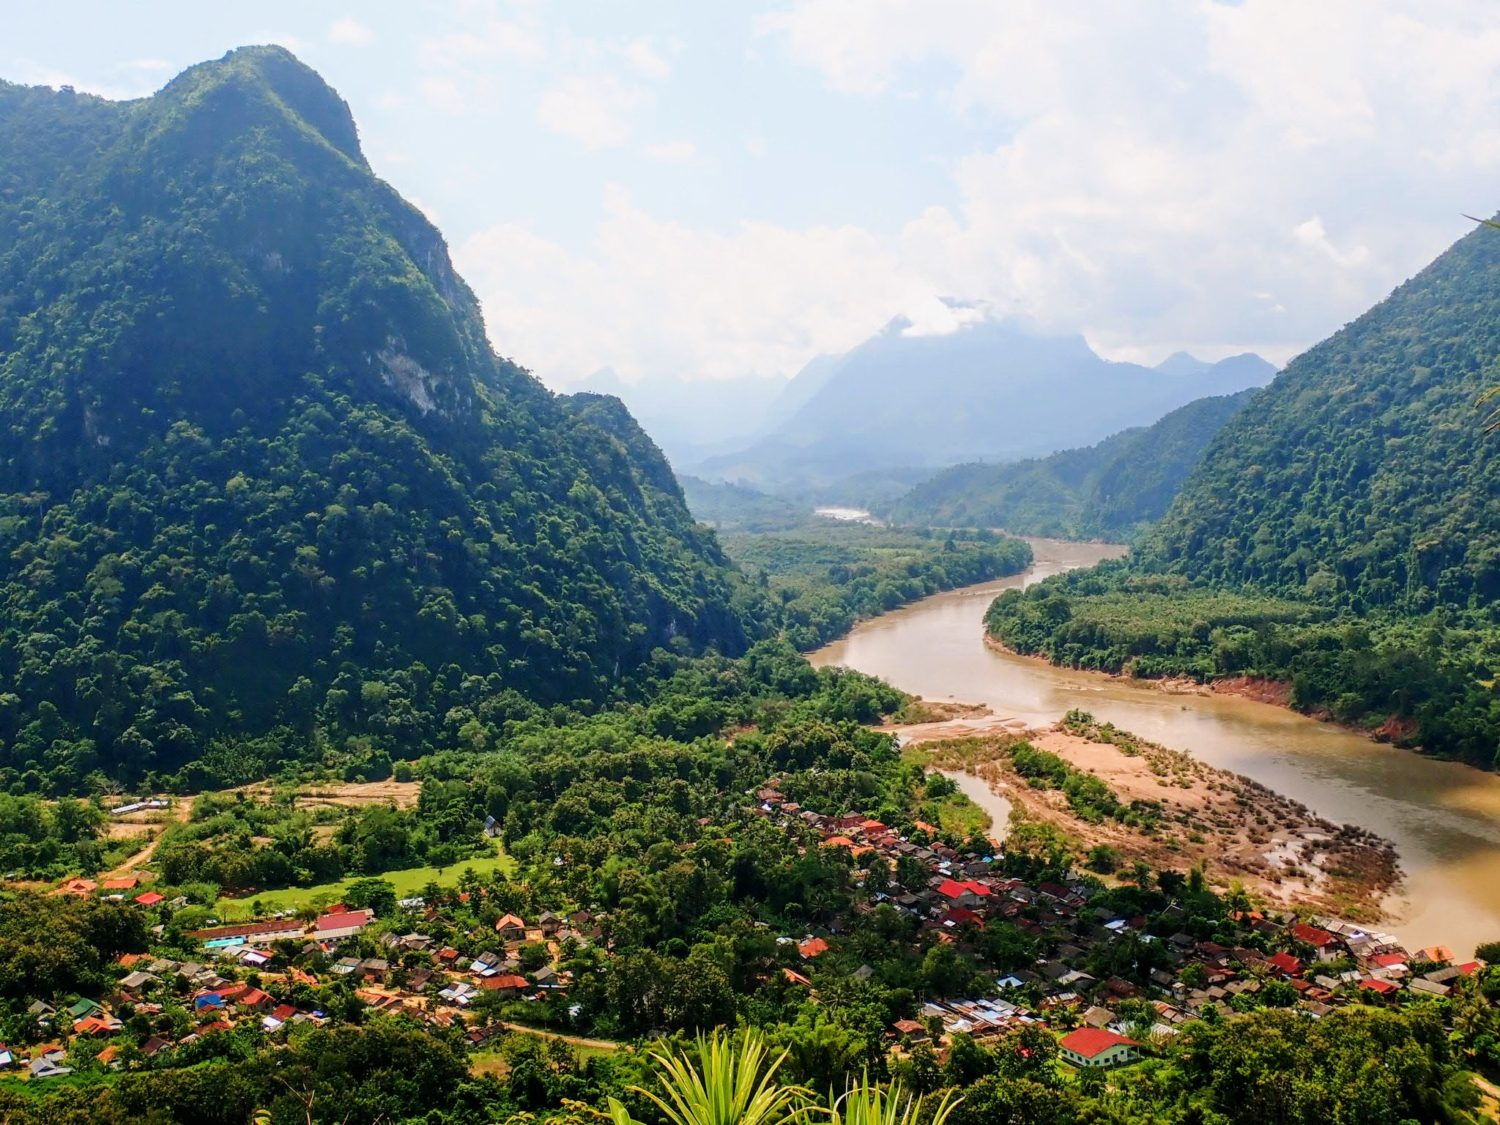 Laos village by river in mountains